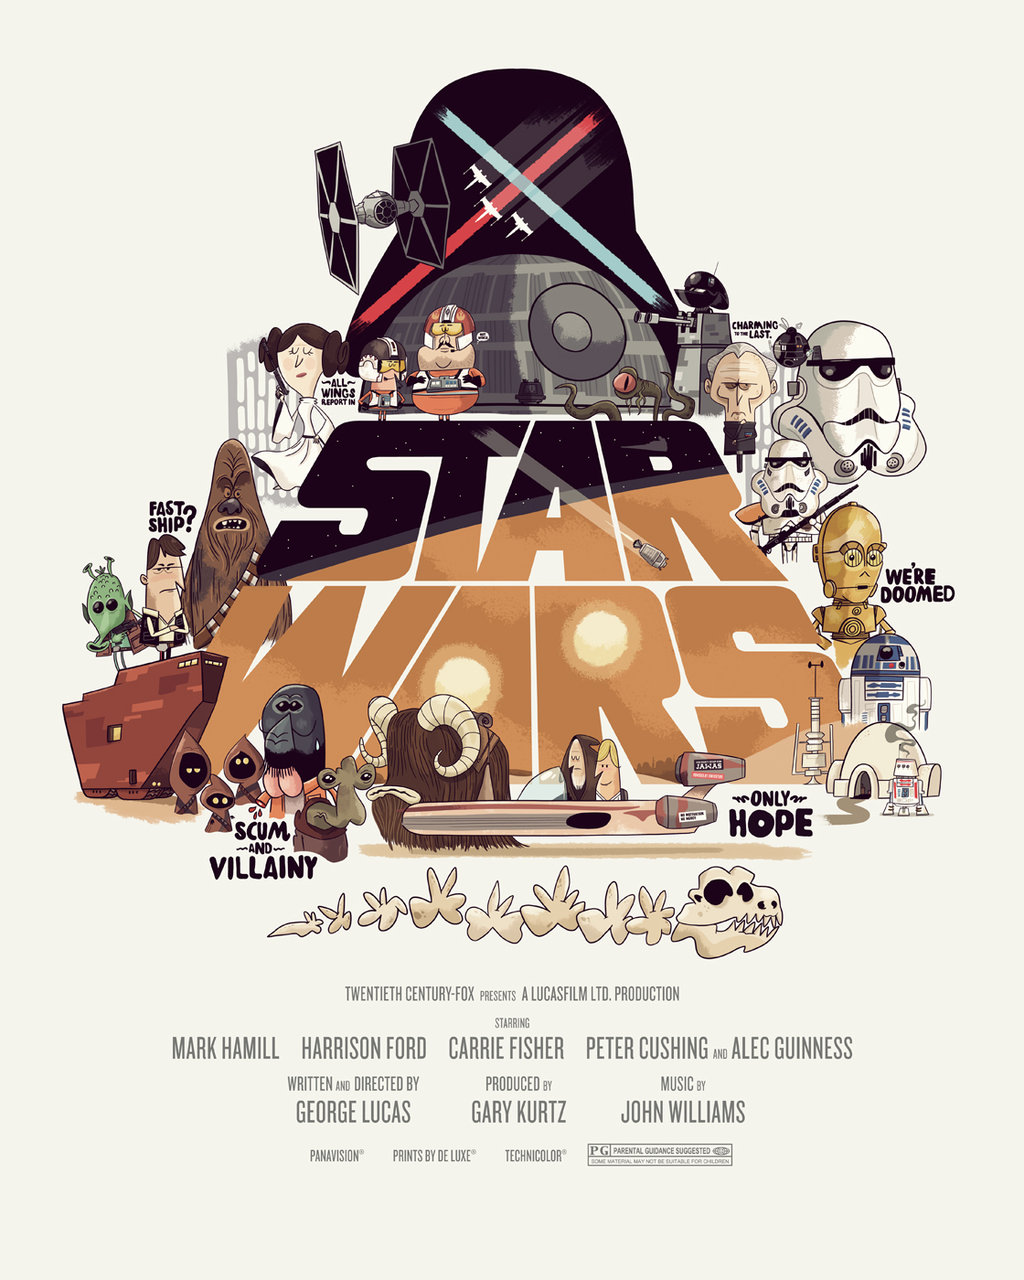 Star Wars Poster Art Awesome Star Wars Original Trilogy Movie Posters